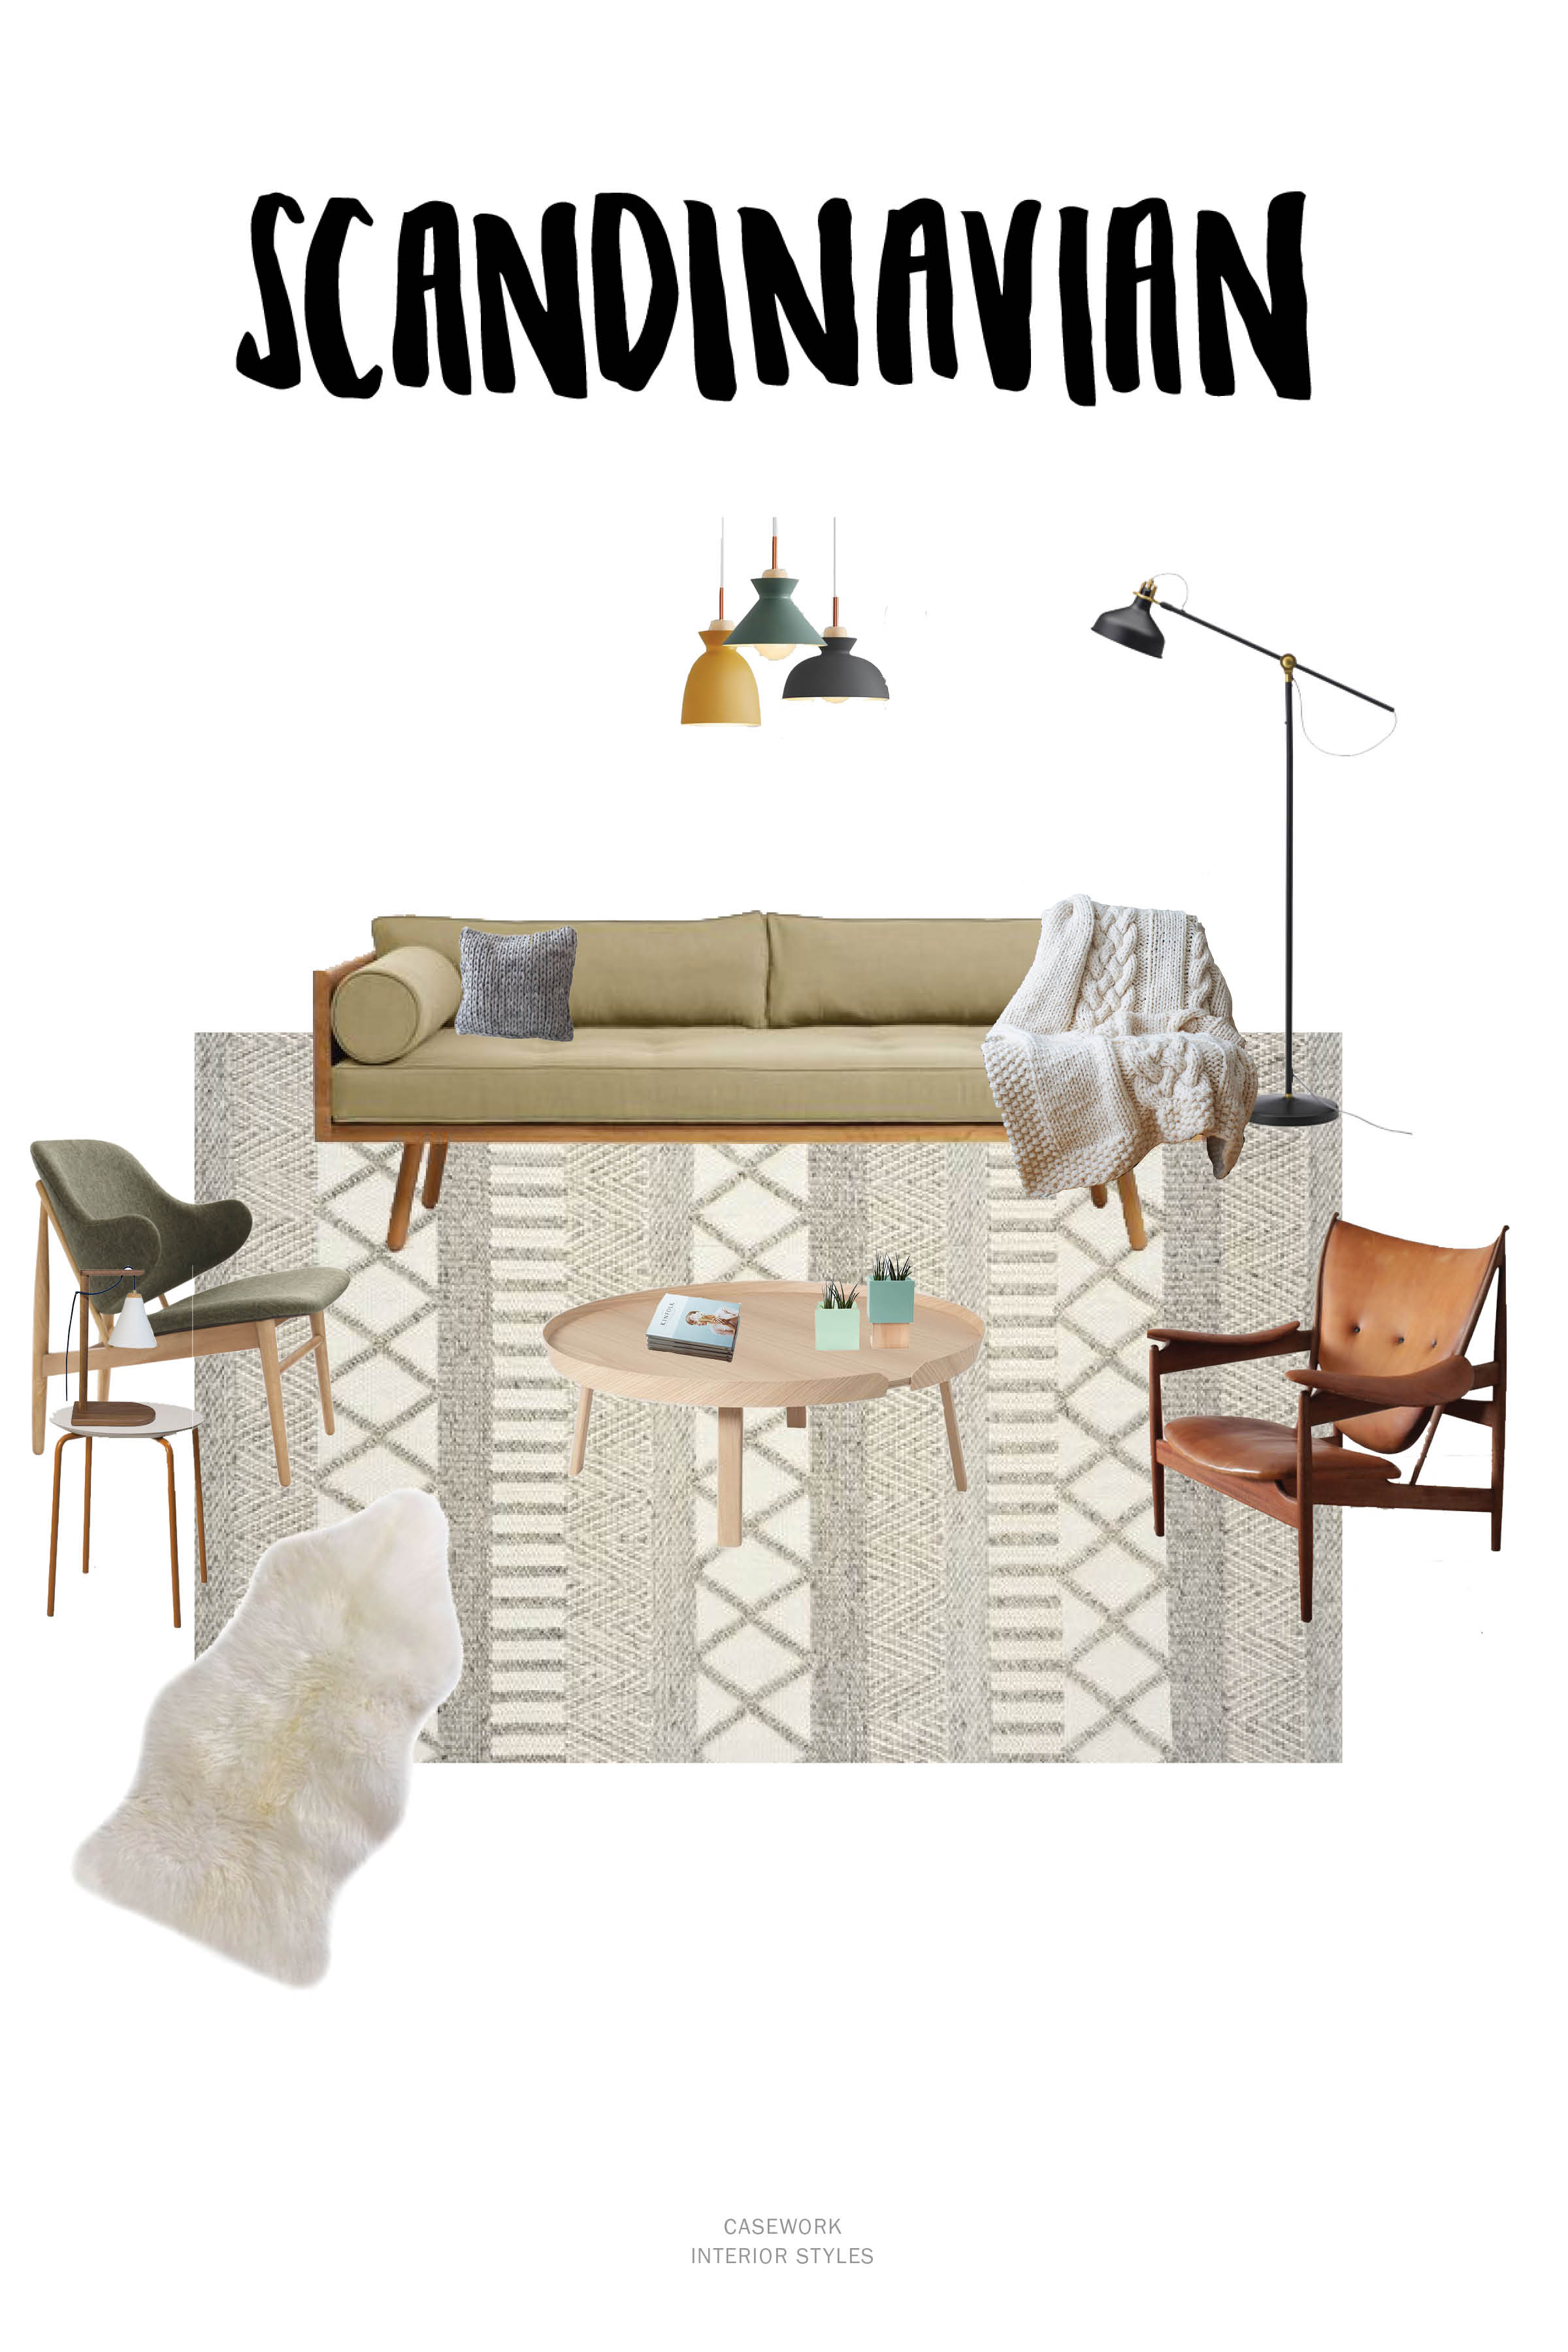 Scandinavian Interior Style Resources:   Pendants  |  Sofa  |  Floor Lamp  |  Chunky Cable Knit Throw  |  Leather Lounge Chair  |  Coffee Table  |  Rug  |  Upholstered Side Chair  |  Side Table  |  Table Lamp  |  Sheepskin Throw